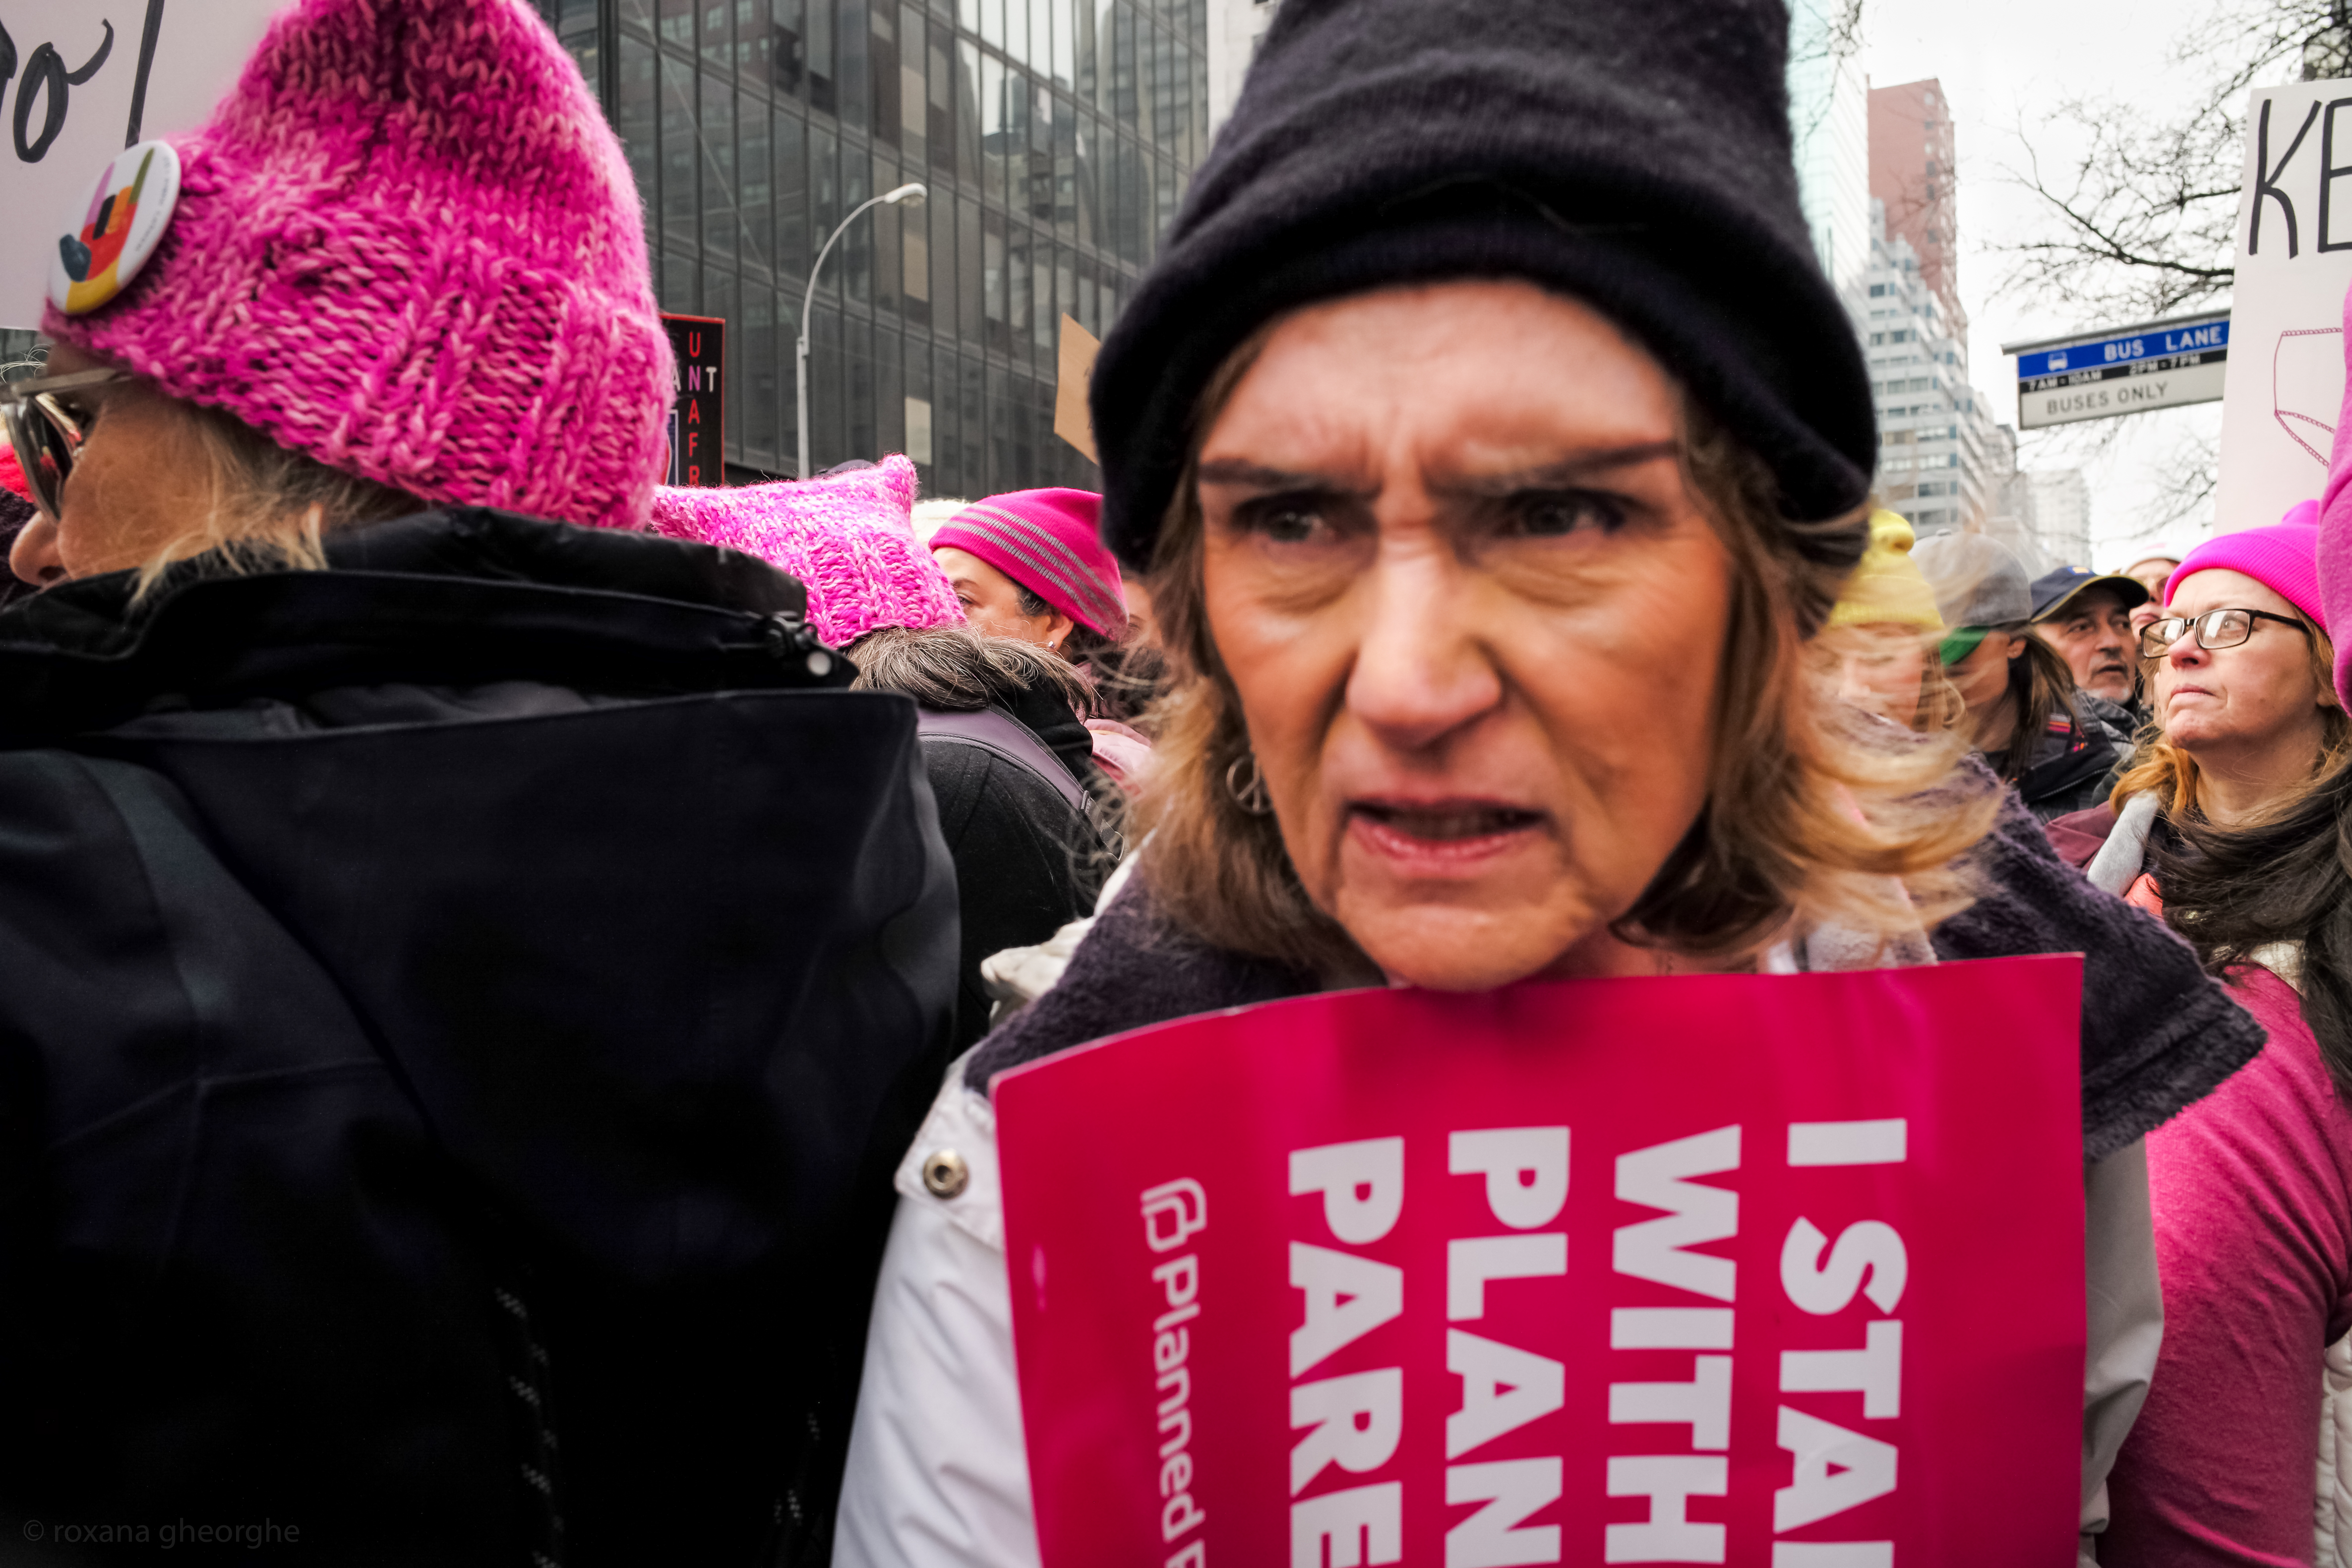 Close Up Women March 2017 01 21 1006576